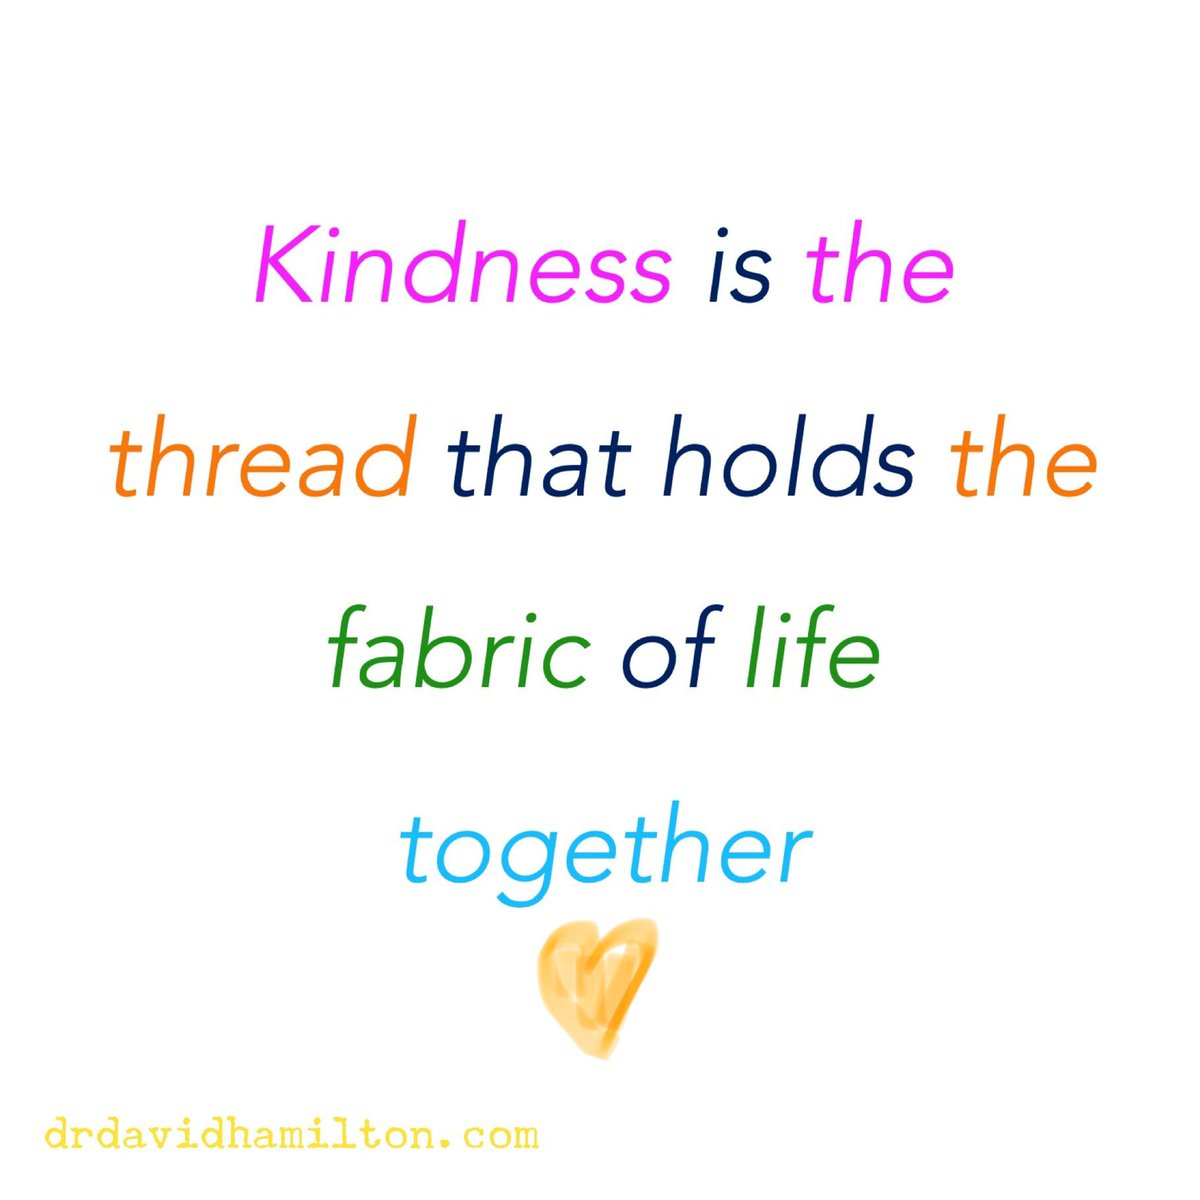 When times are hard, kindness is the glue that keeps us together.🦋